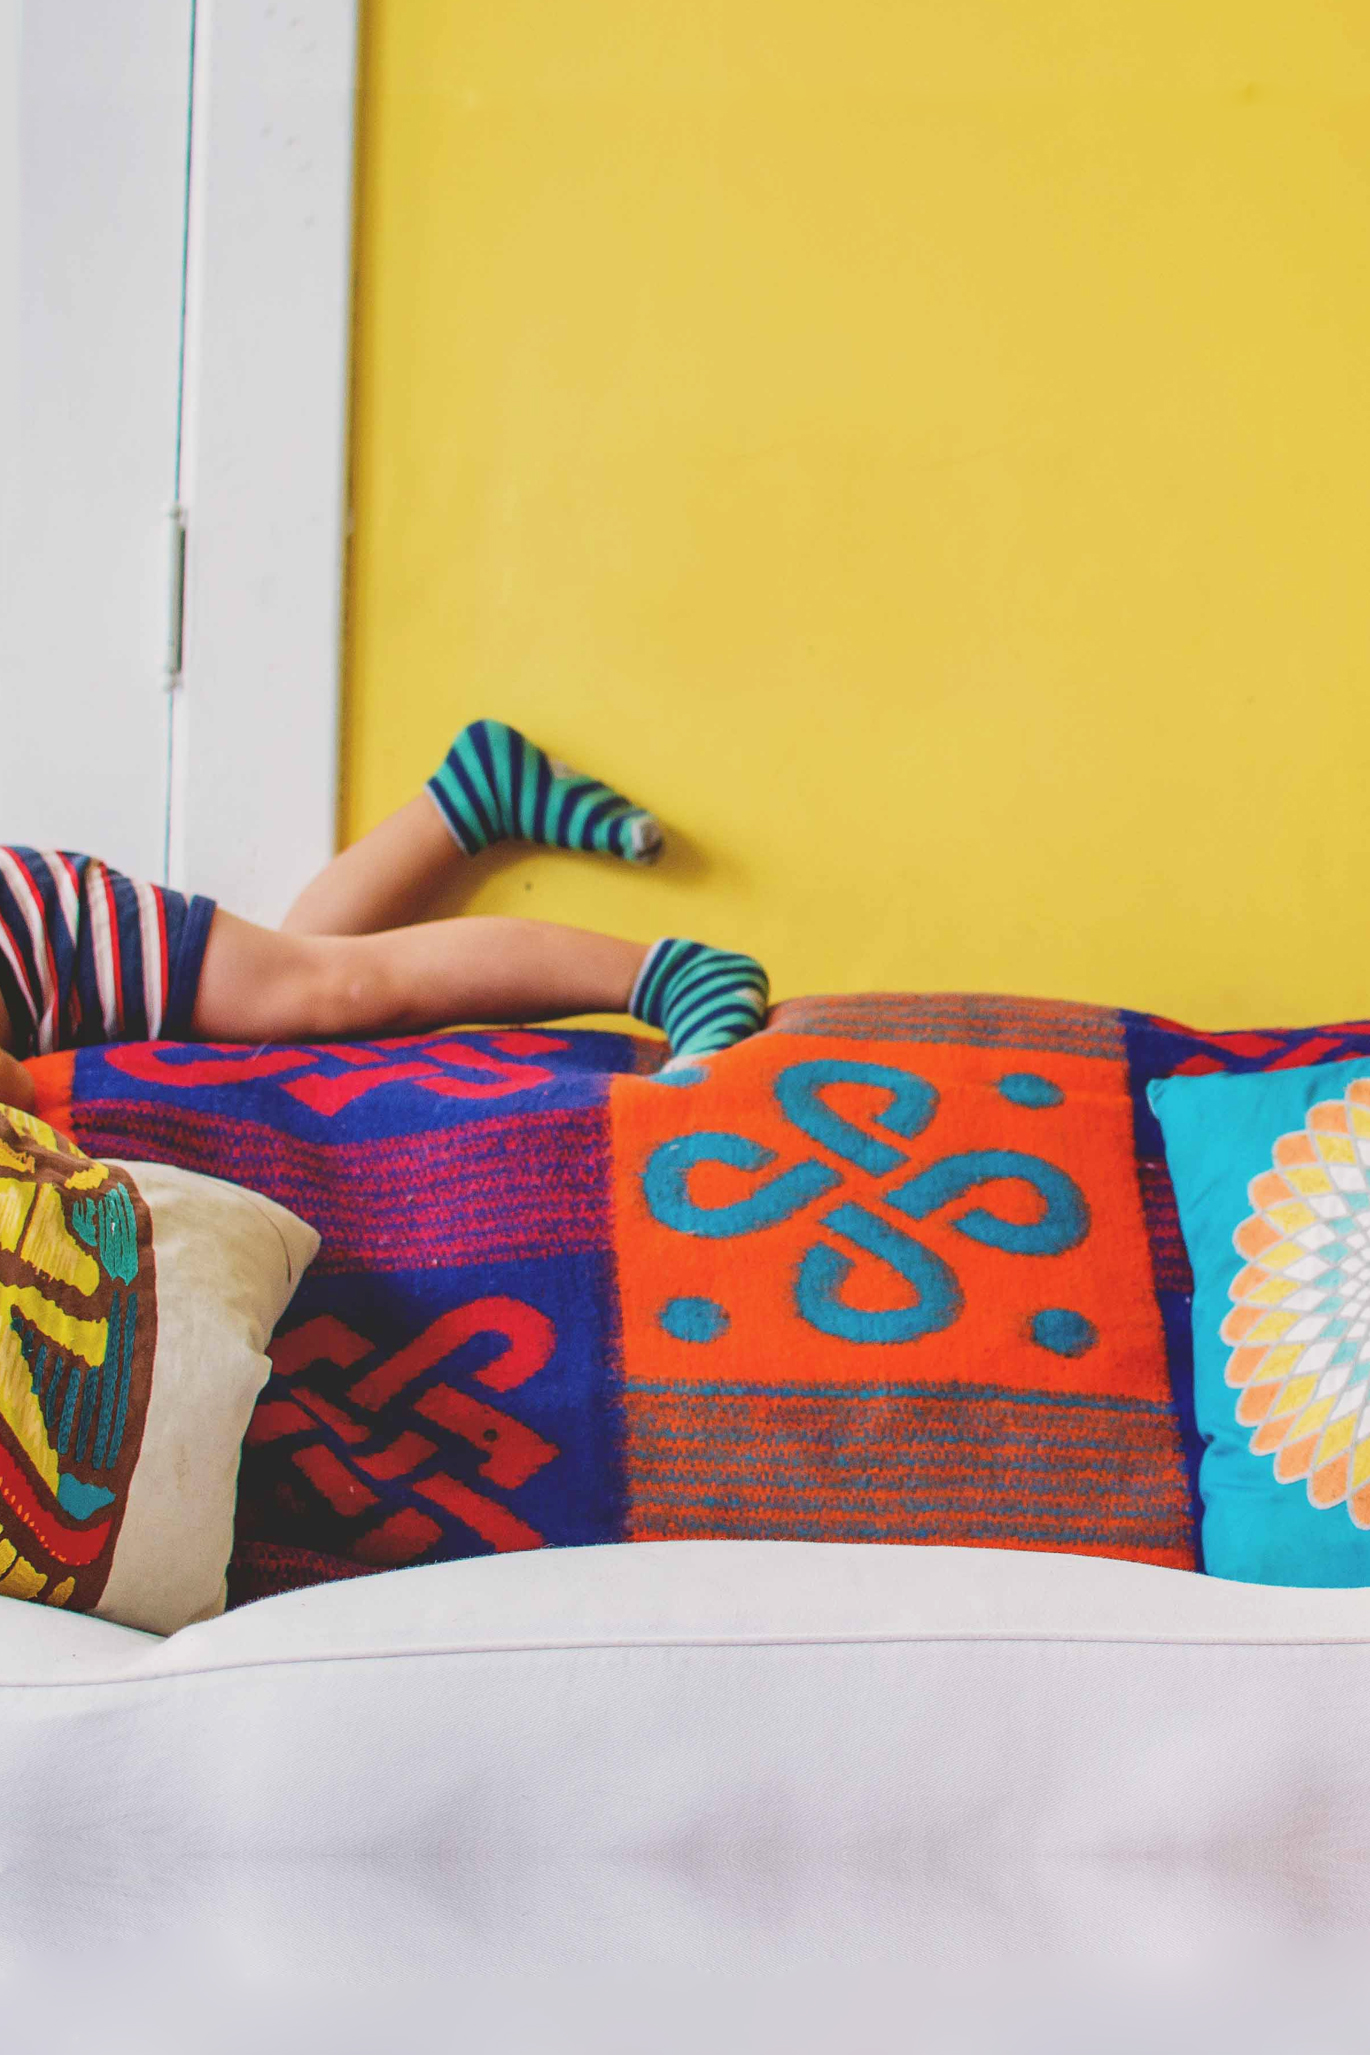 Eclectic home with colorful yellow wall and fun throw pillow